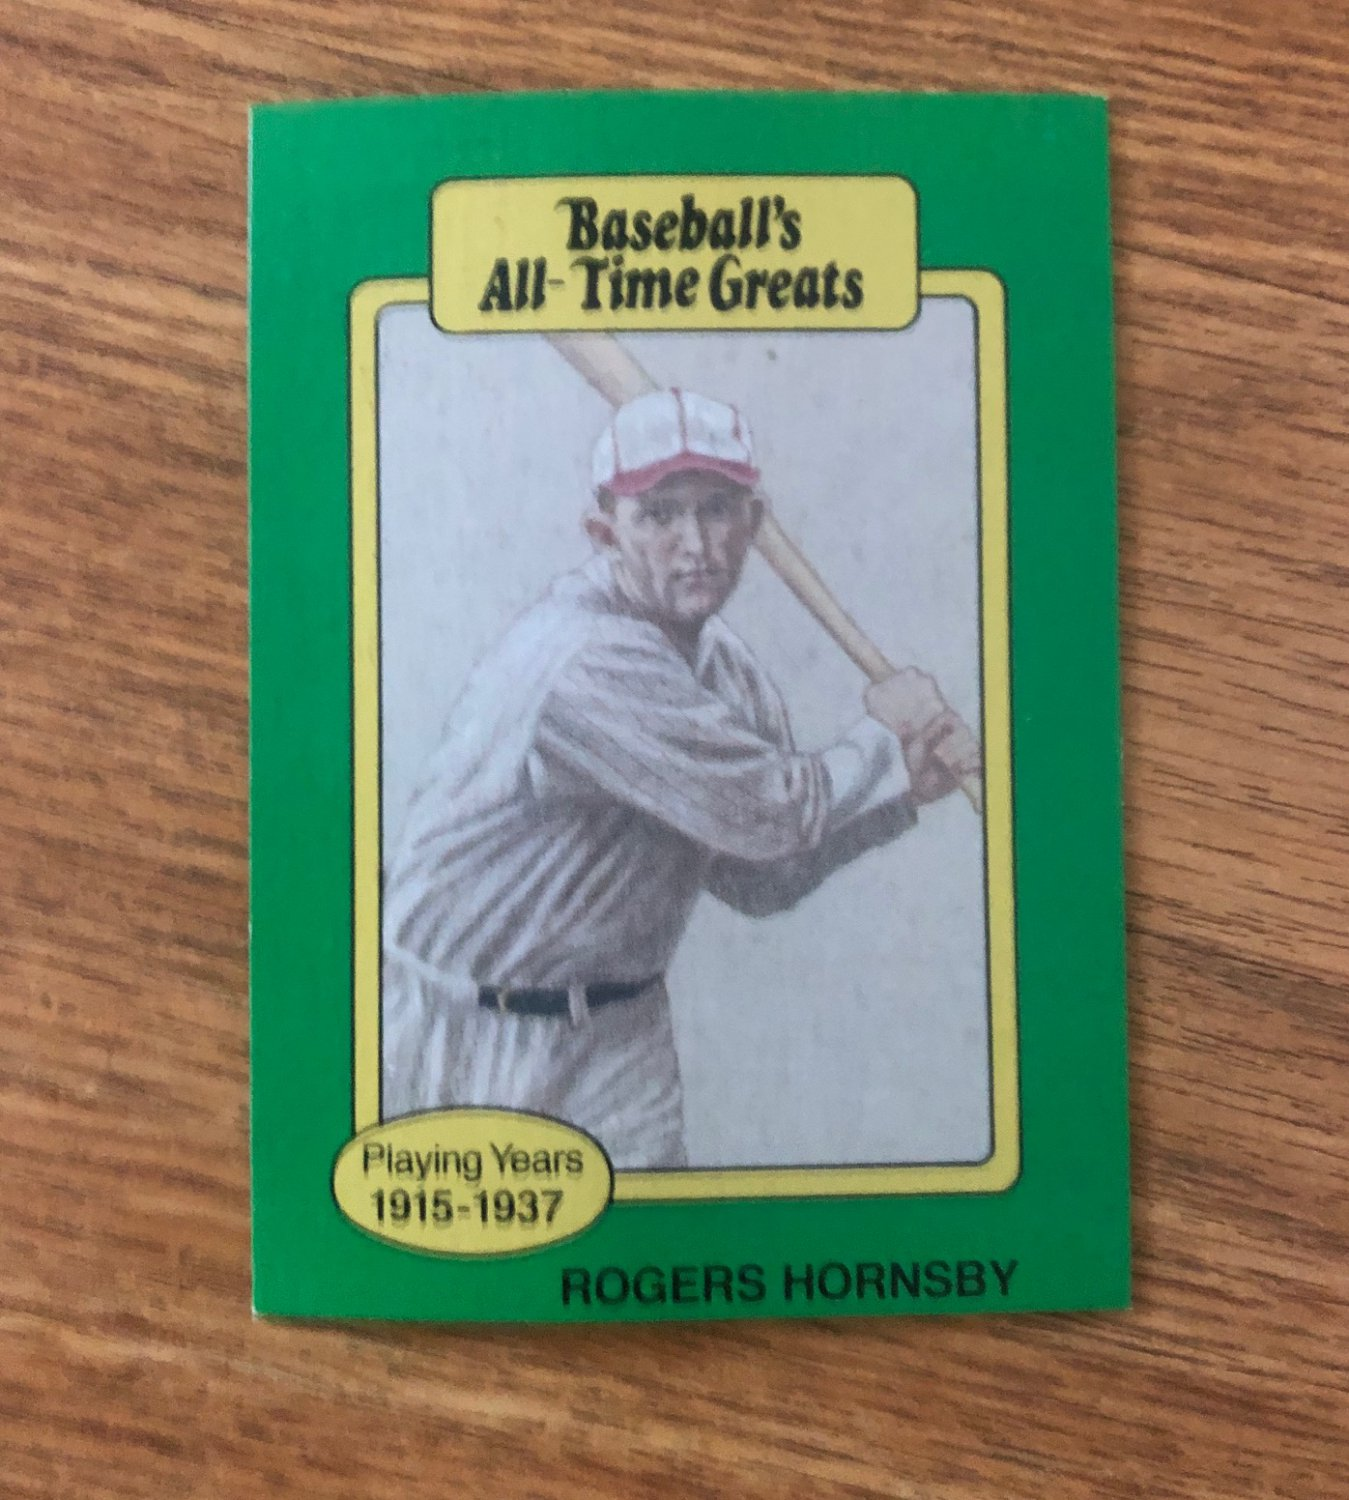 Rogers Hornsby Baseball Card (St. Louis Cardinals) 1987 Hygrade All Time Greats - FREE SHIPPING